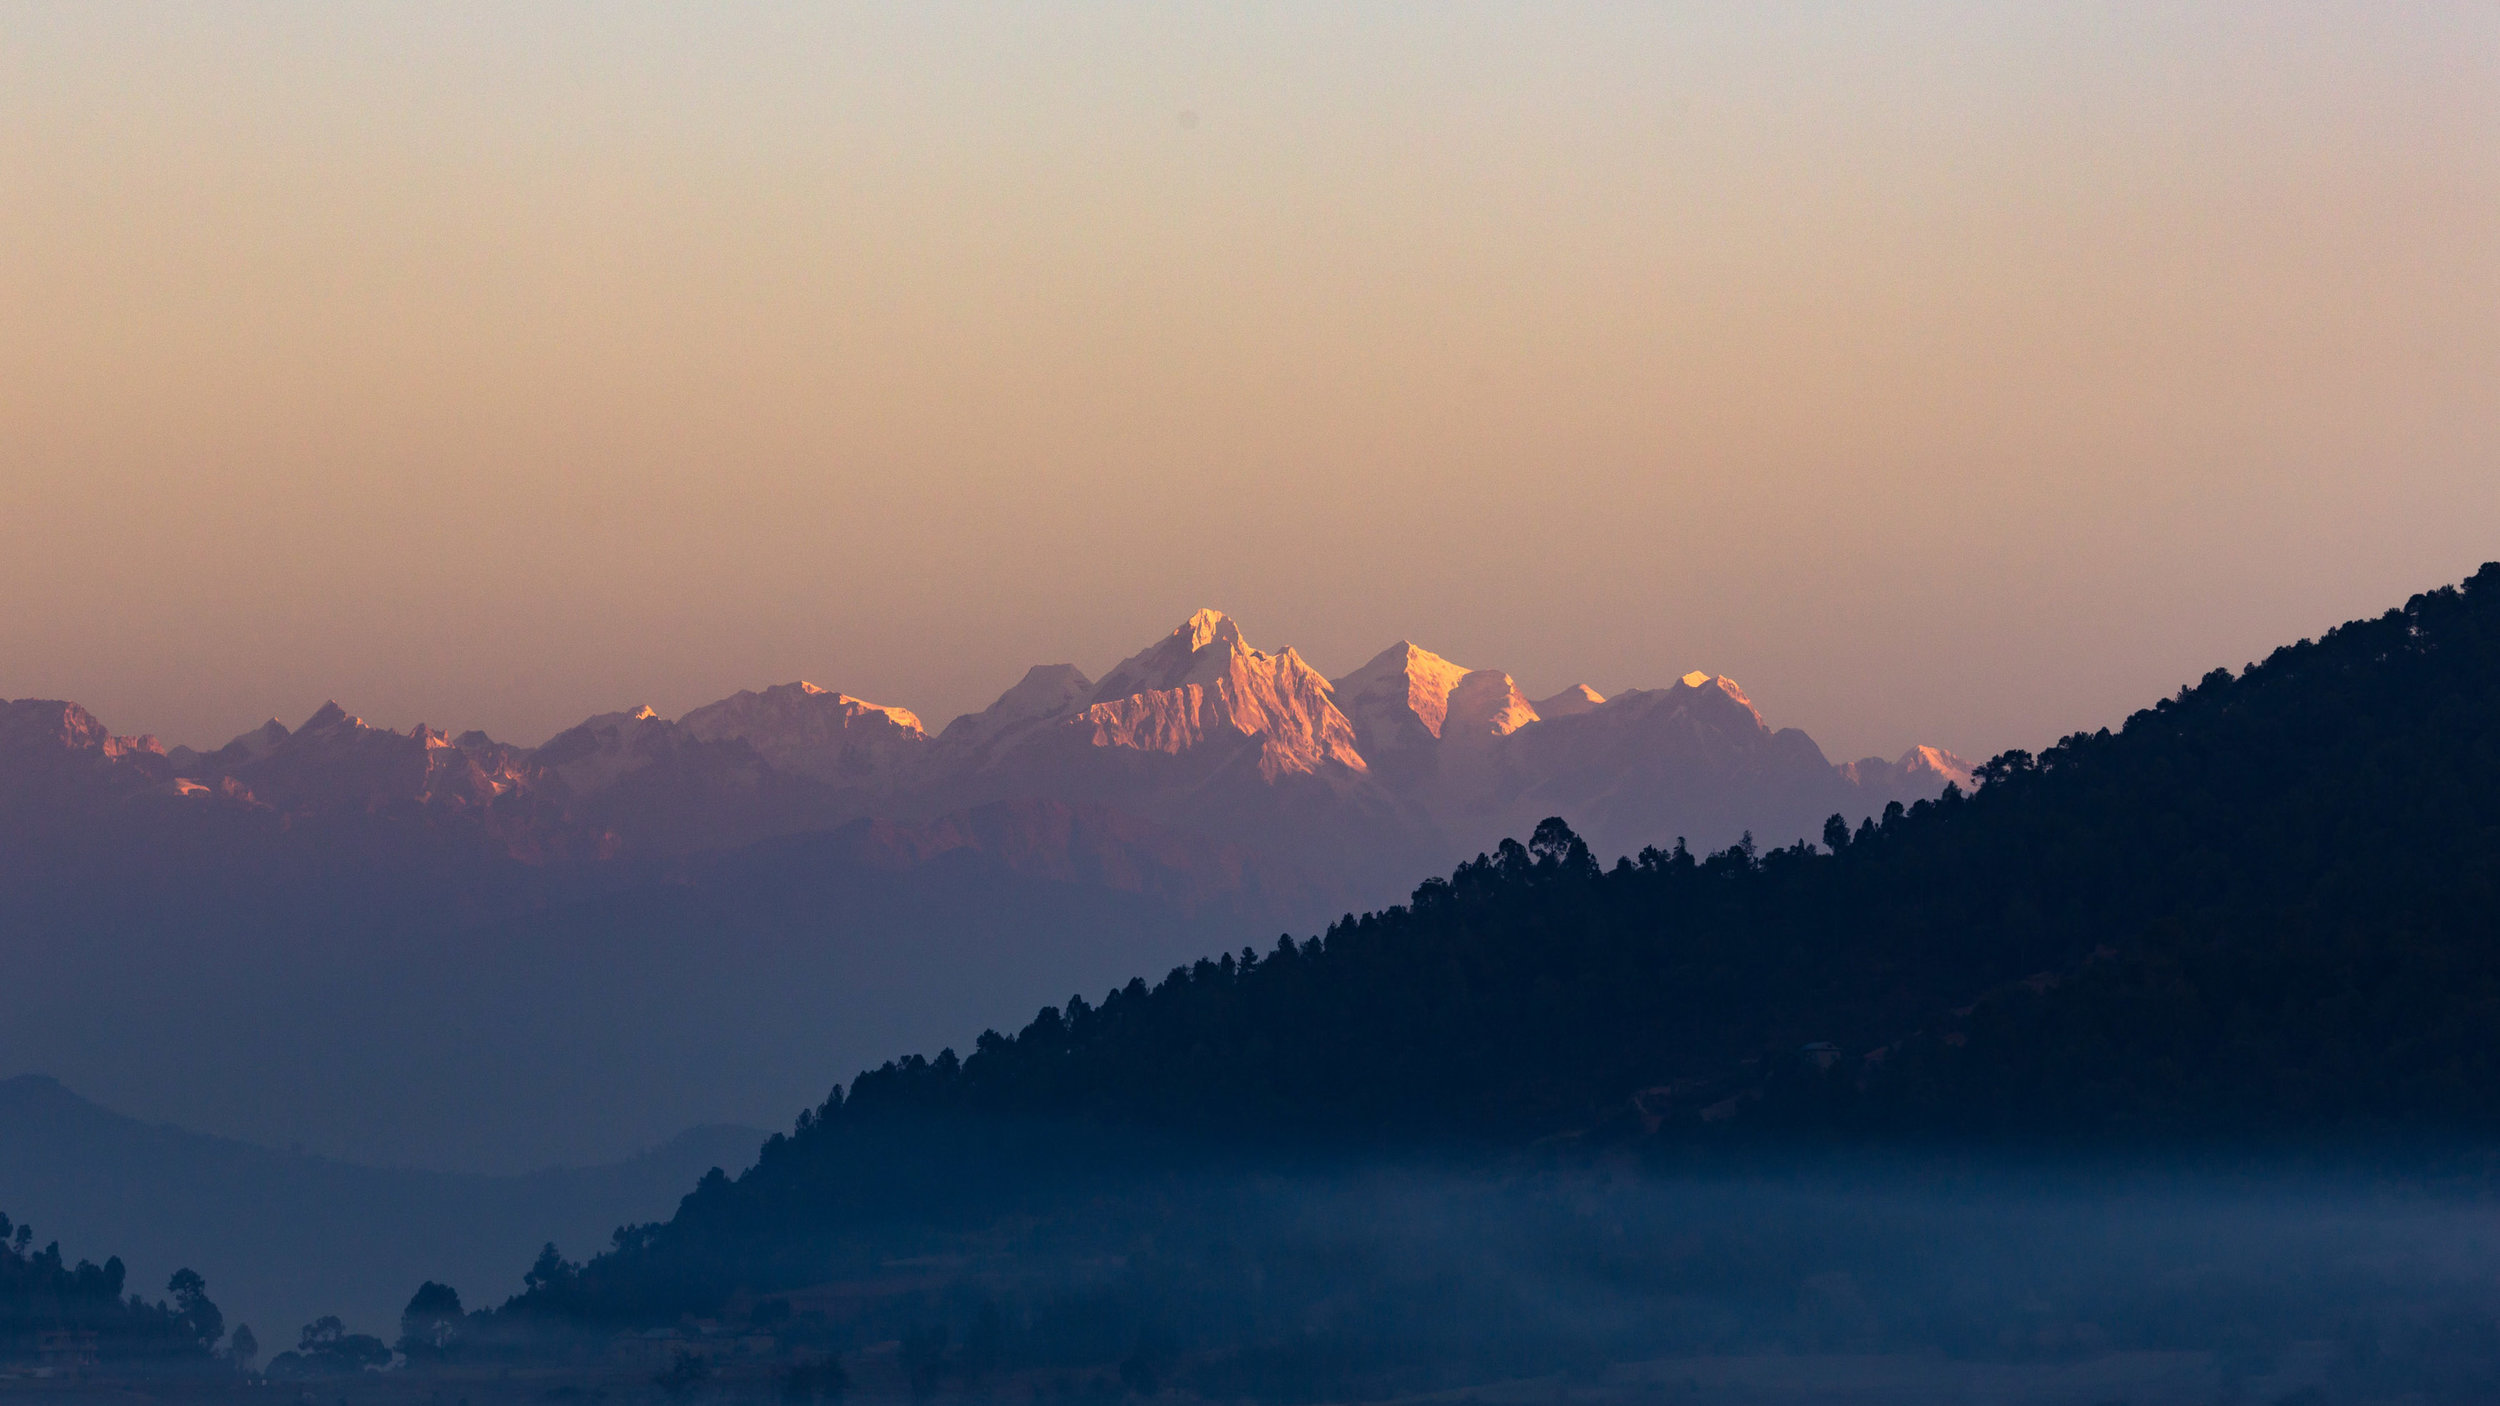 Morning view of the Himalayas from the rooftop of our guest house